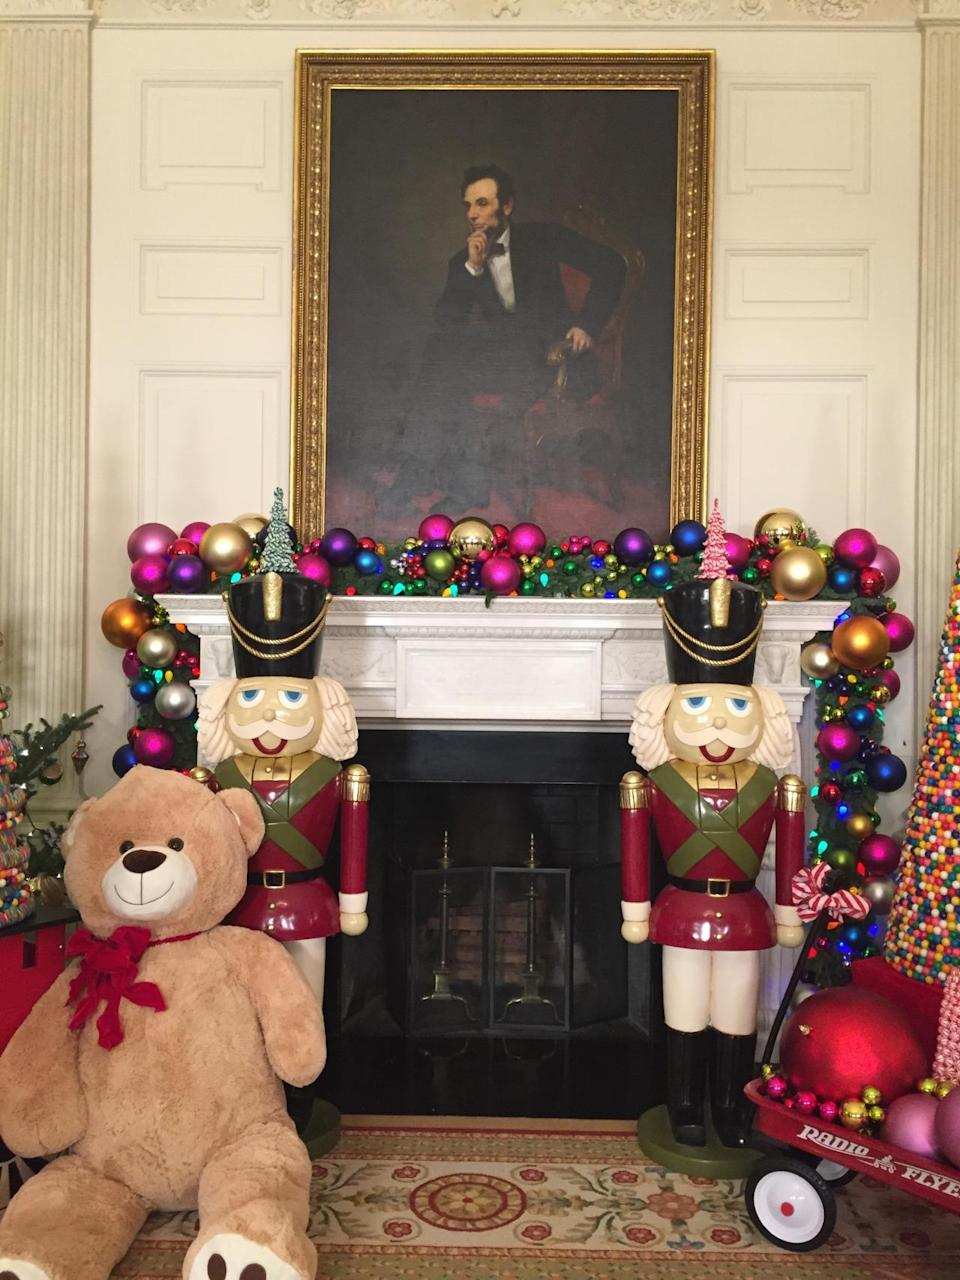 <p>Ever-serious Abraham Lincoln is flanked by two giant nutcrackers, a massive teddy bear, and trees made of candy. <i>(Photo: Cassie Carothers)</i></p>